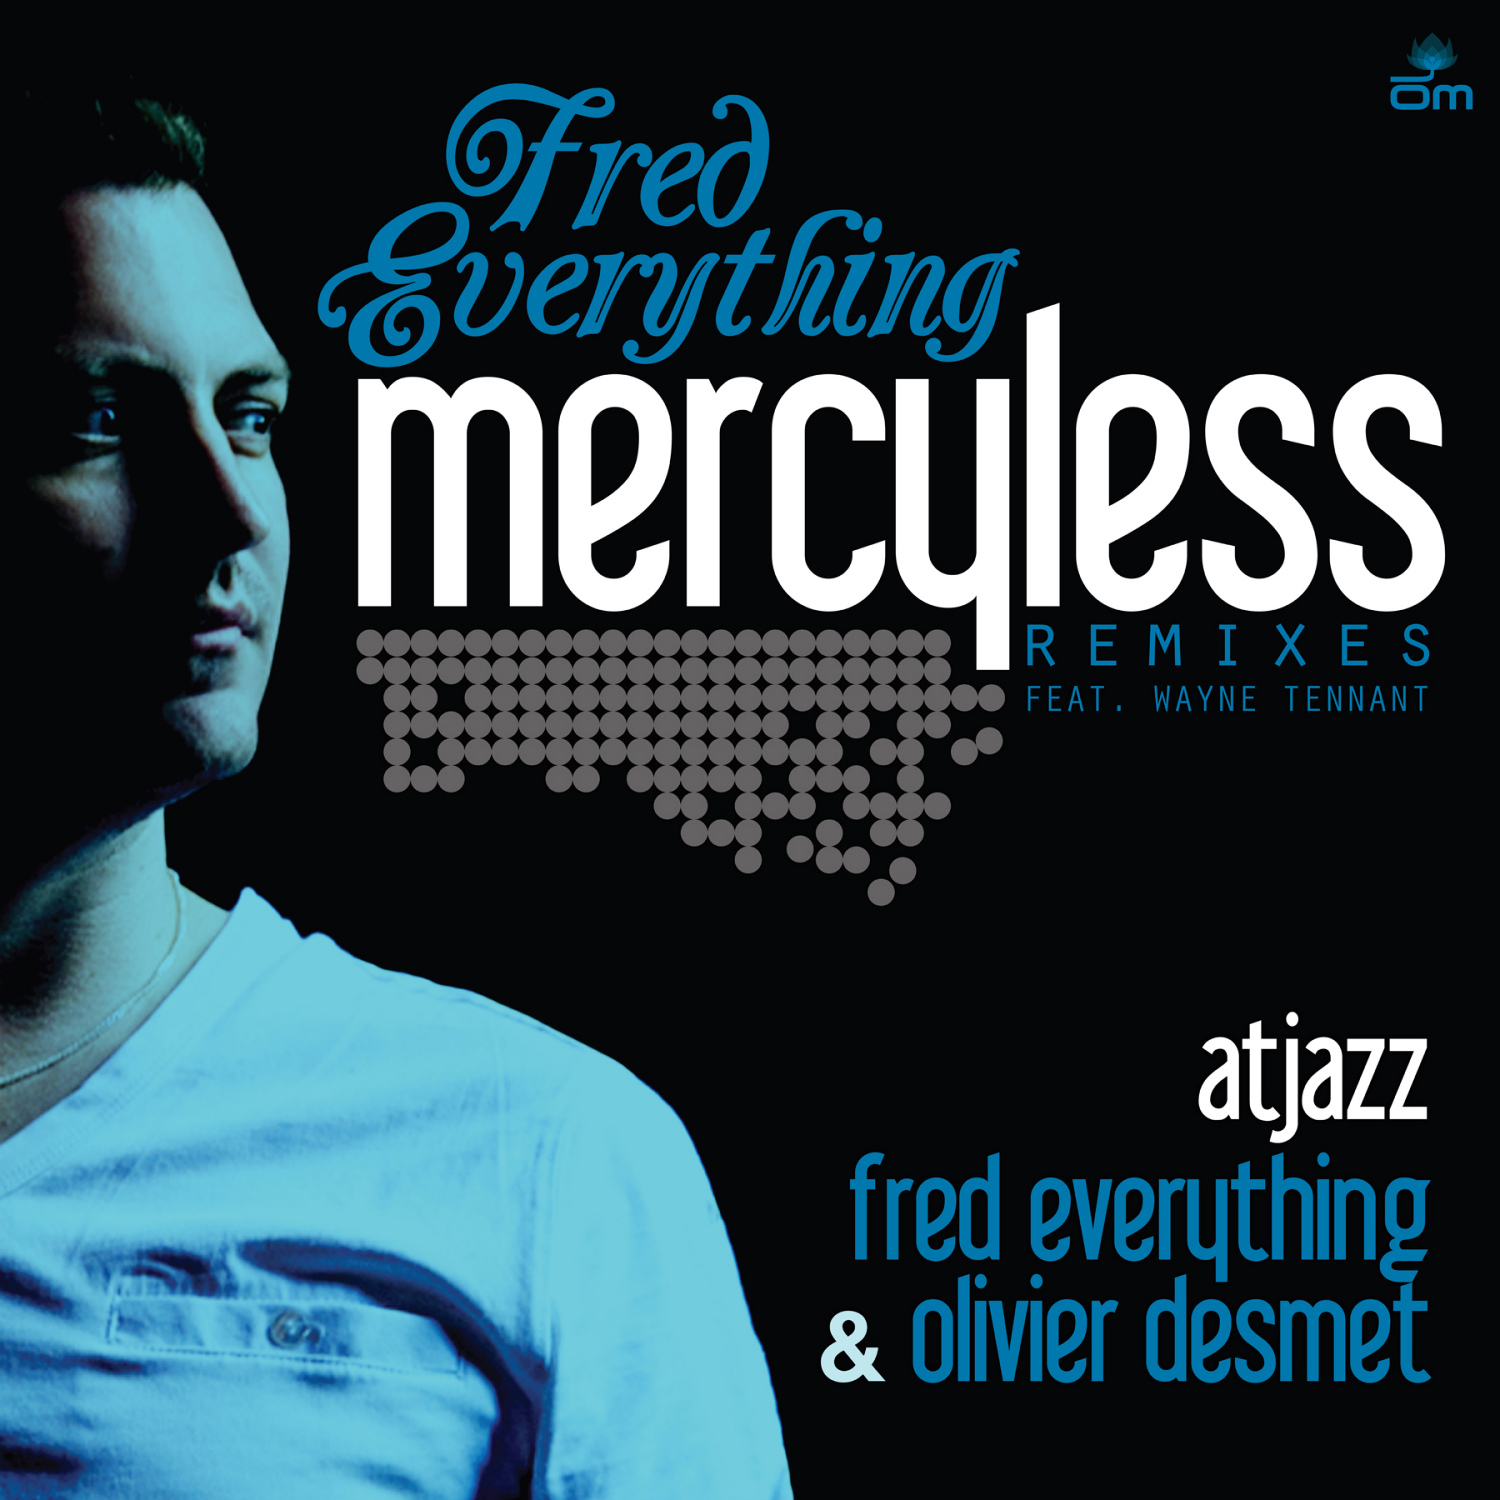 Fred Everything - Mercyless